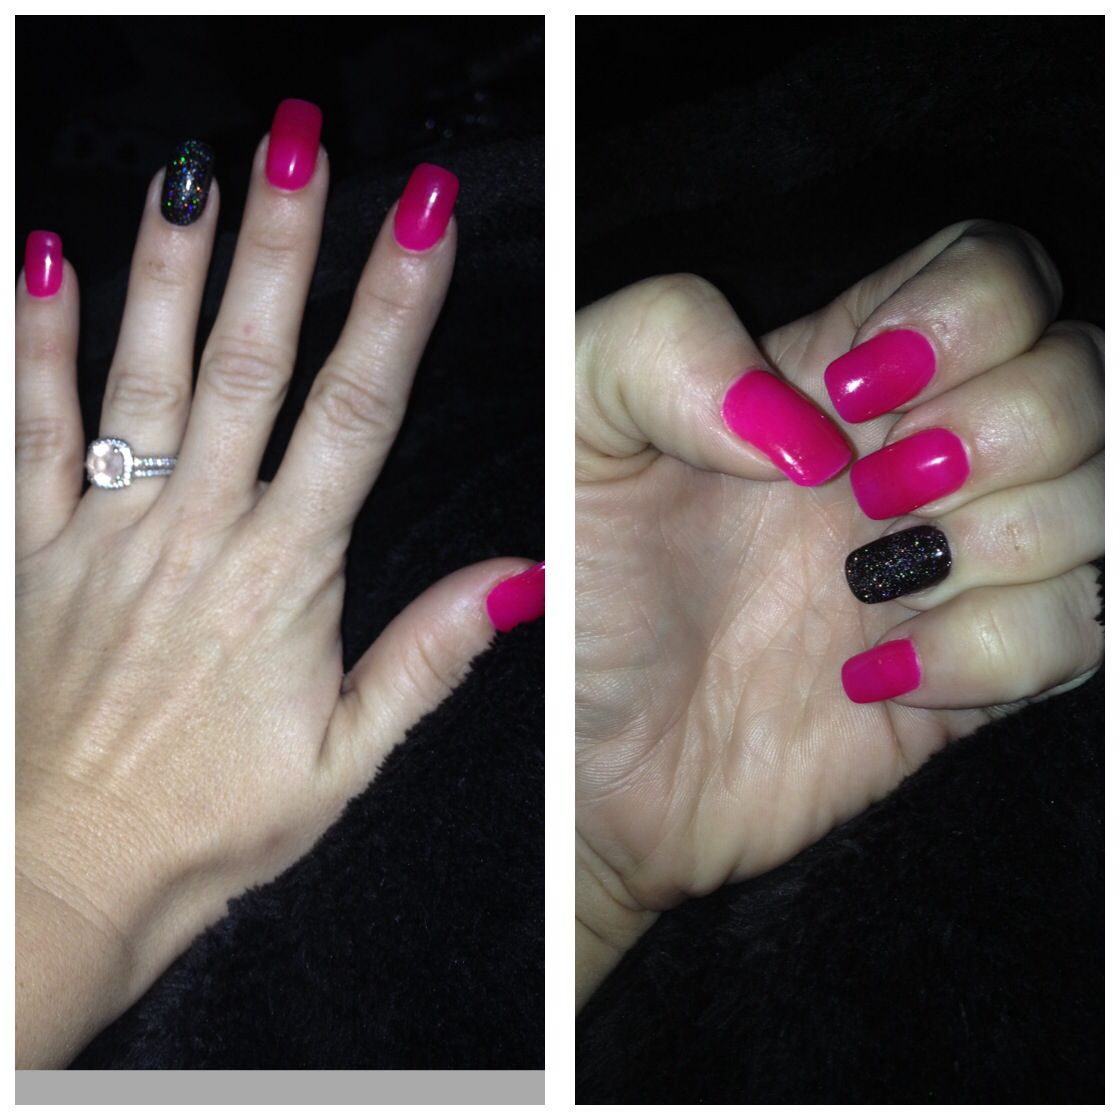 Hot pink nails with black glitter accent | Nails | Pinterest